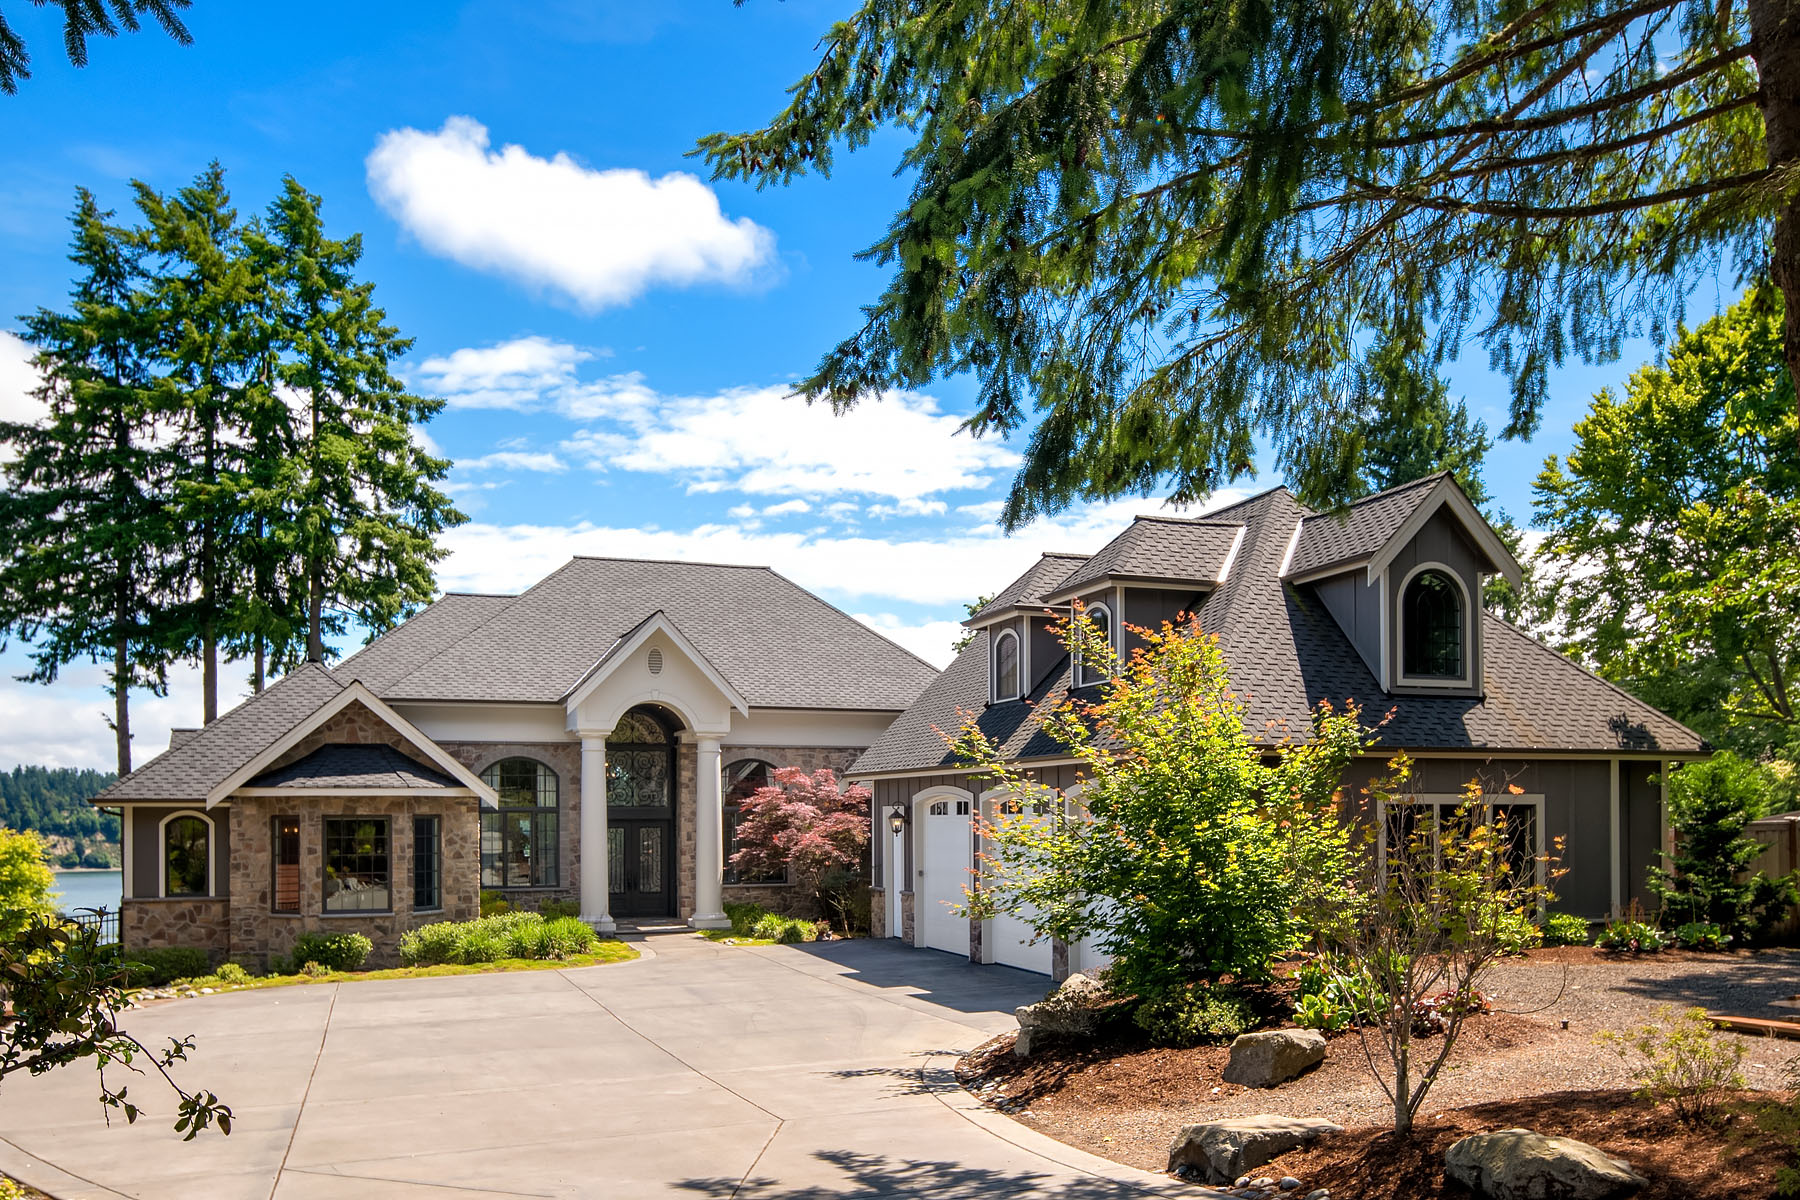 Single Family Homes for Sale at Gig Harbor Good Life 1921 51st Street NW Gig Harbor, Washington 98335 United States